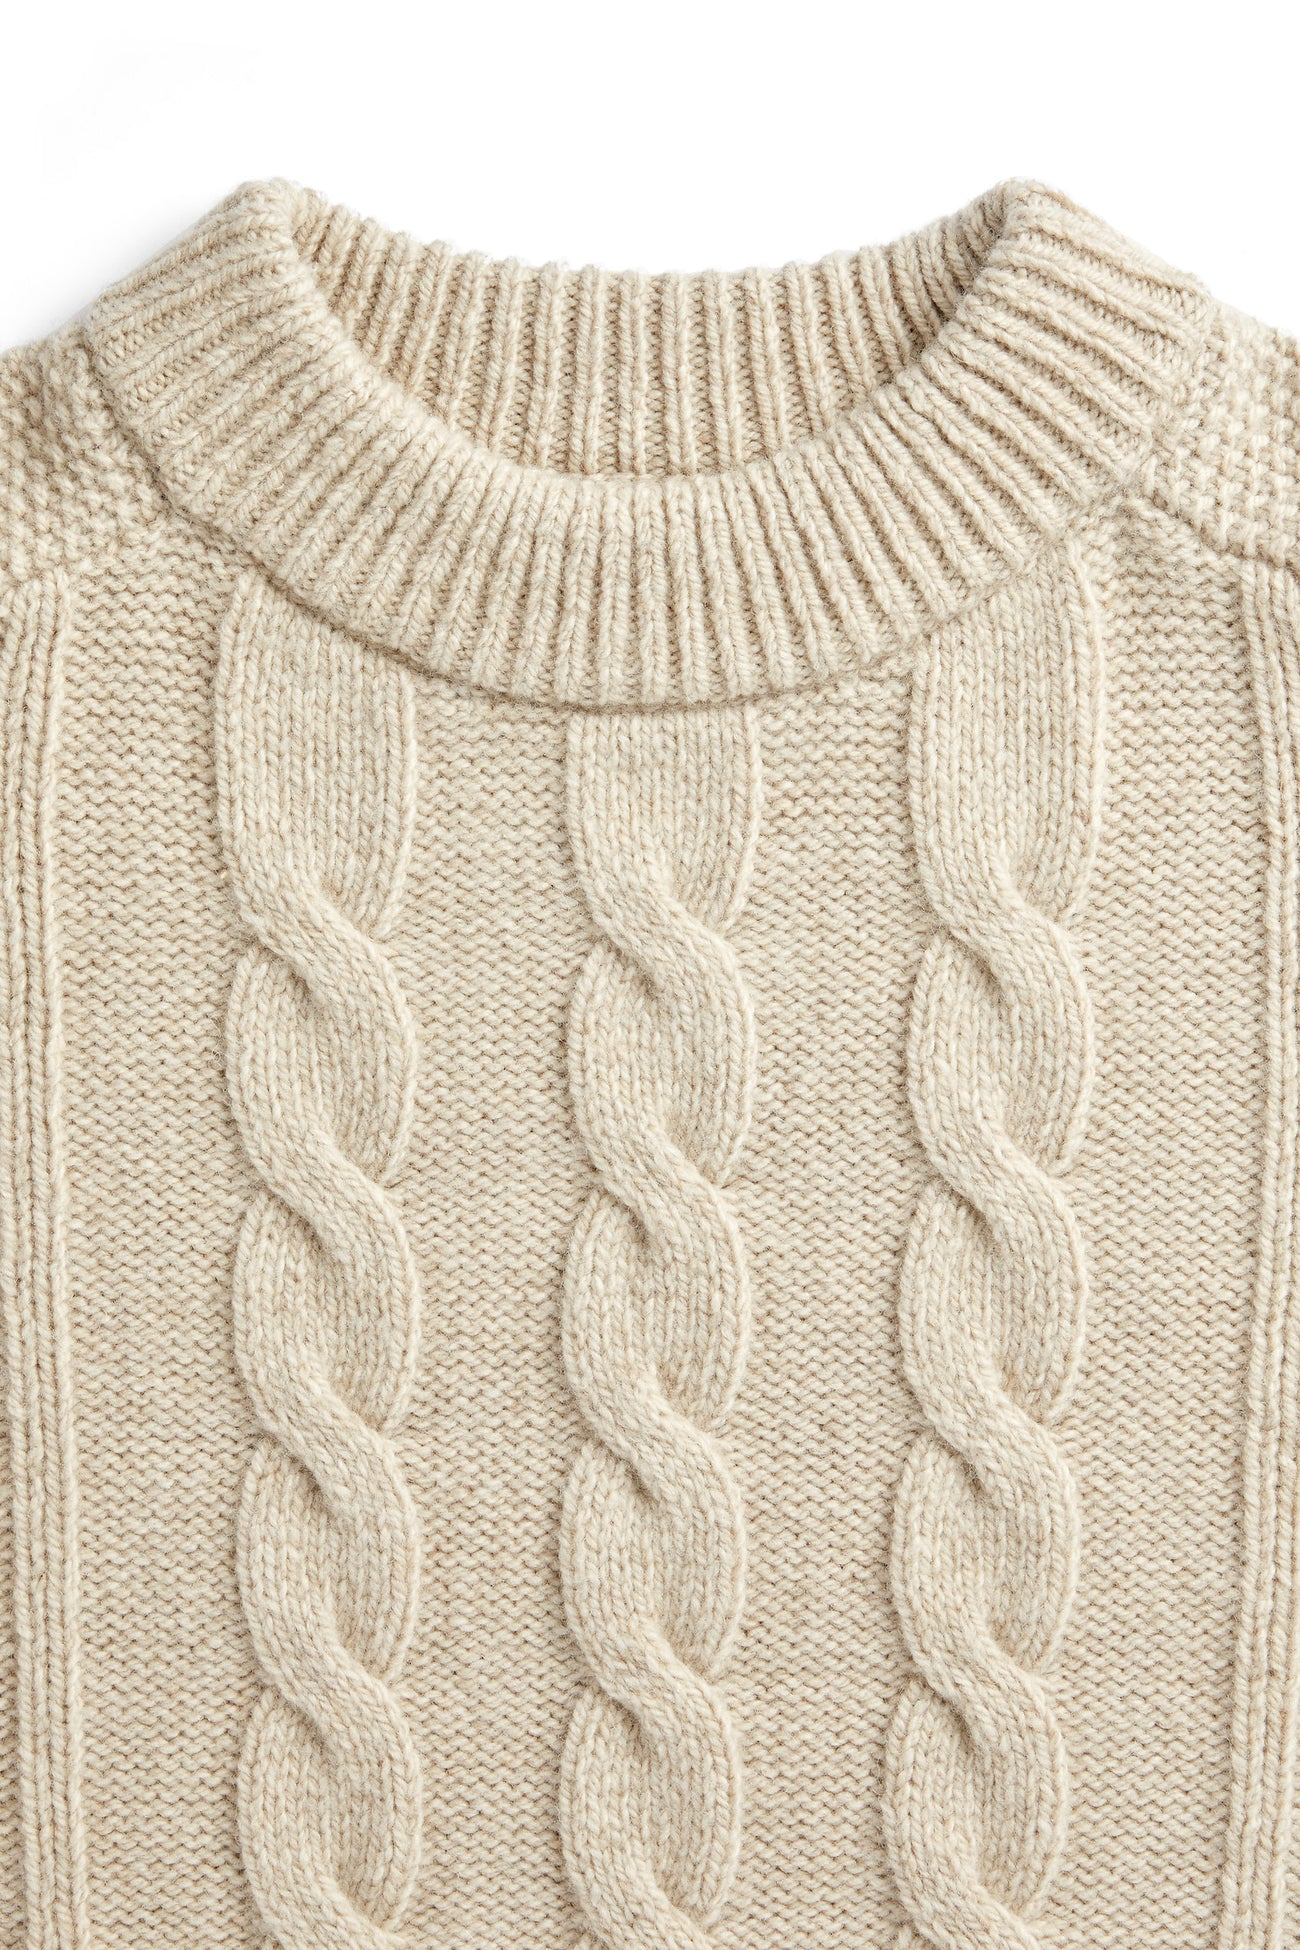 McHarris Cable C-Neck Sweater